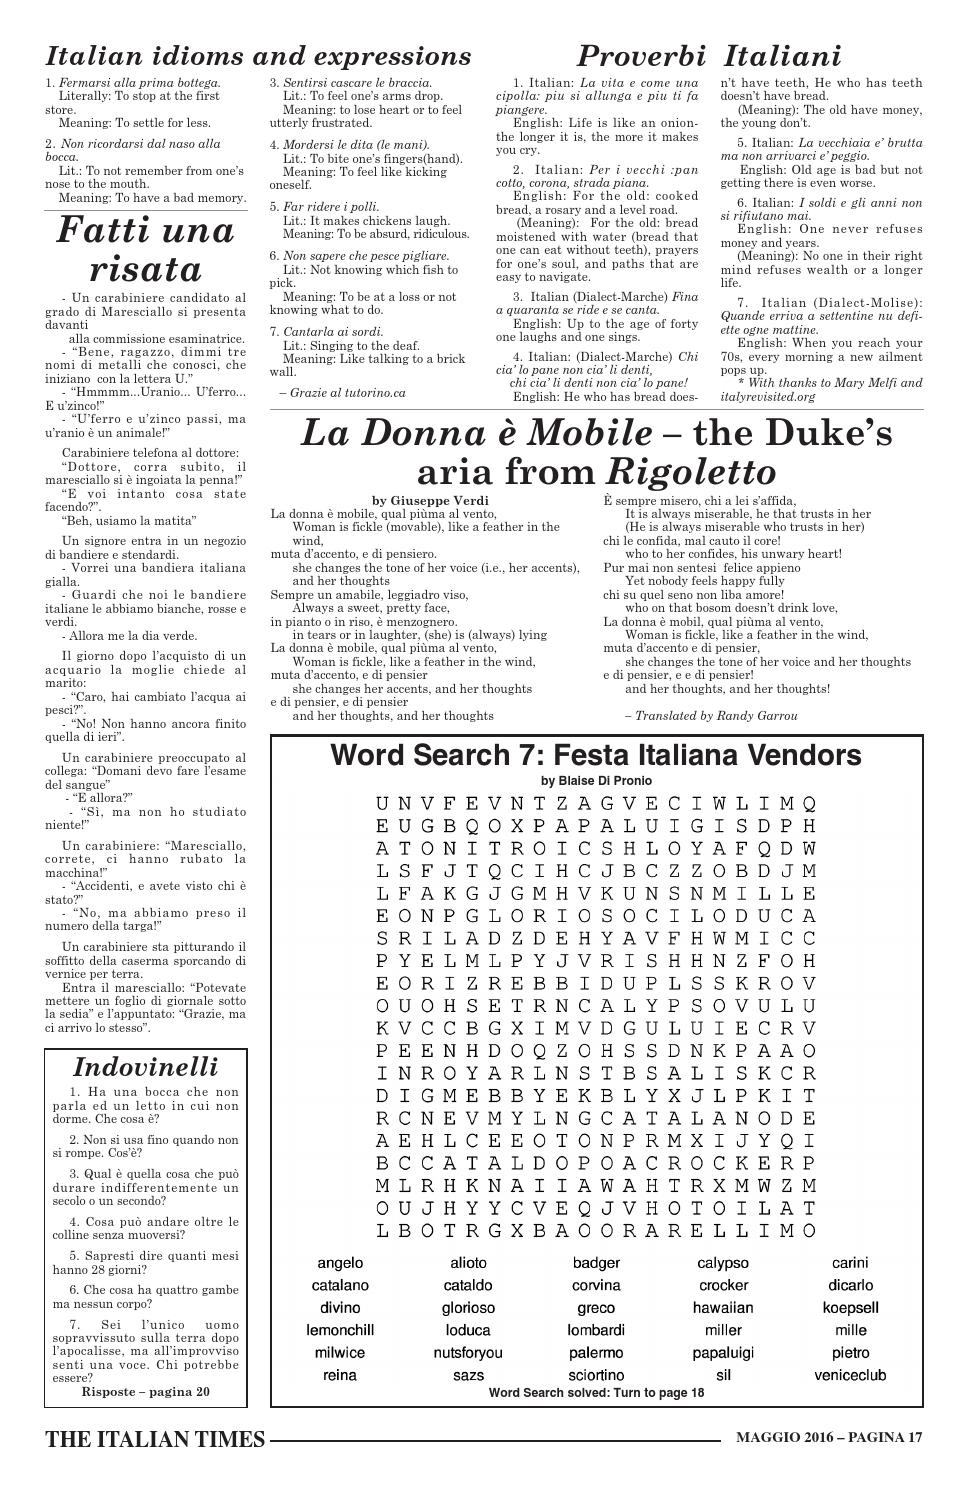 la donna mobile meaning